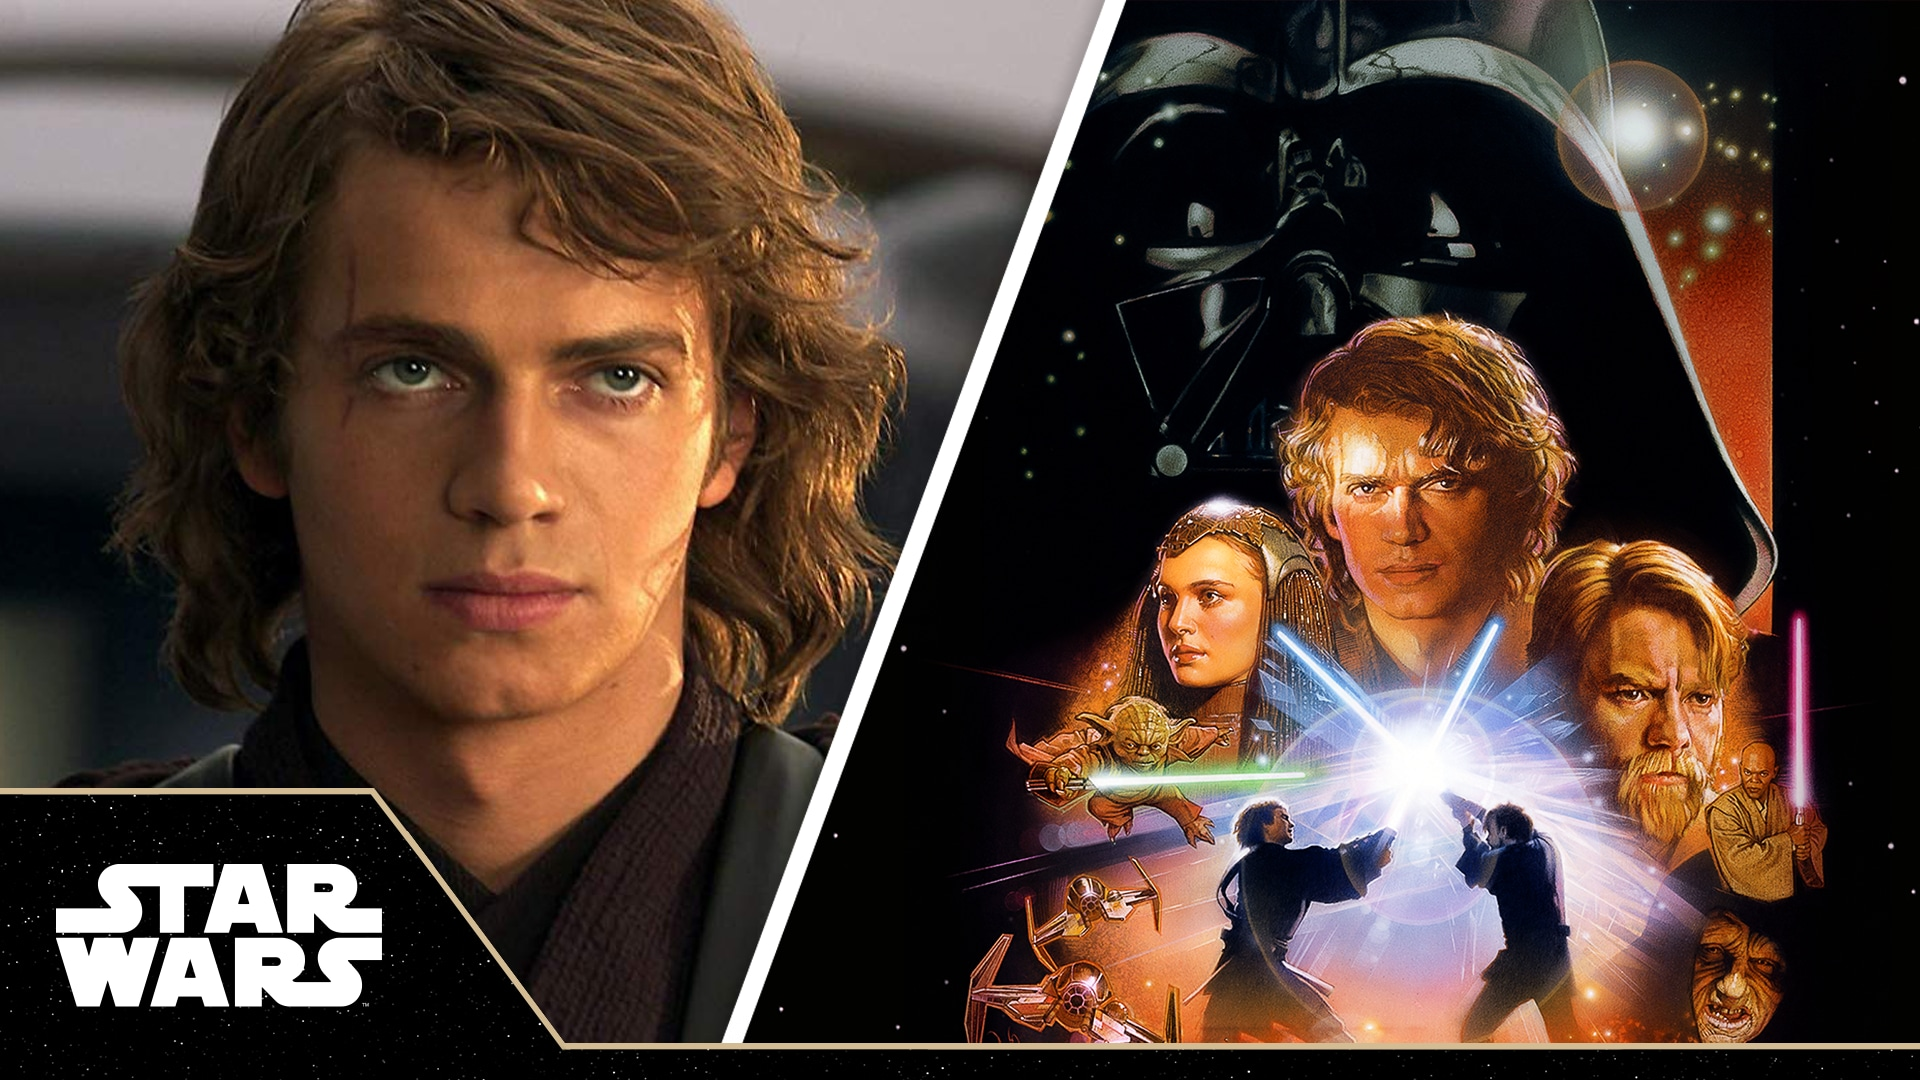 Anakin Skywalker's Journey in Star Wars: Revenge of the Sith | Star Wars